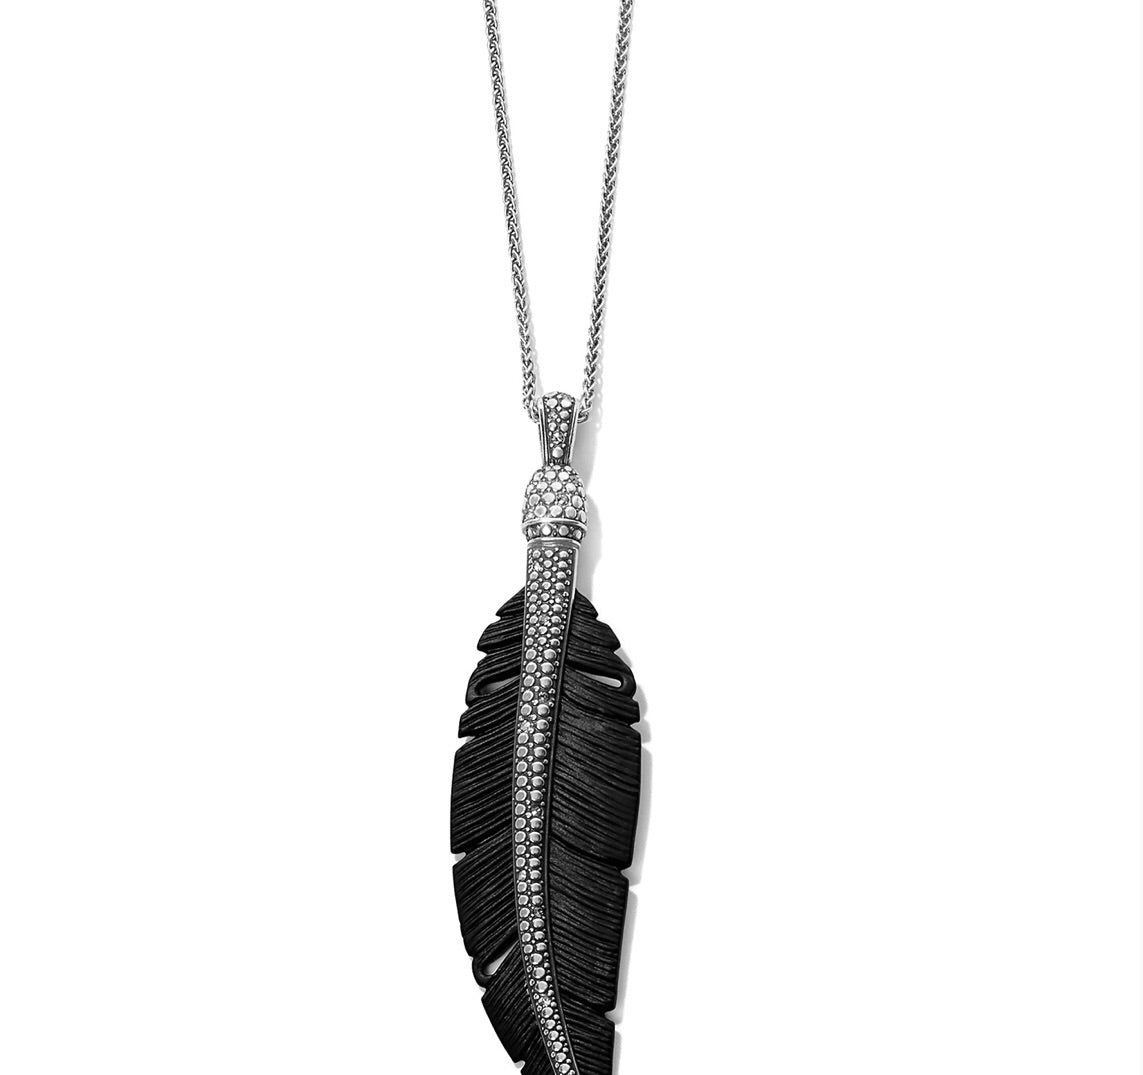 Brighton Free Spirit Feather Necklace JM280A or JM280B